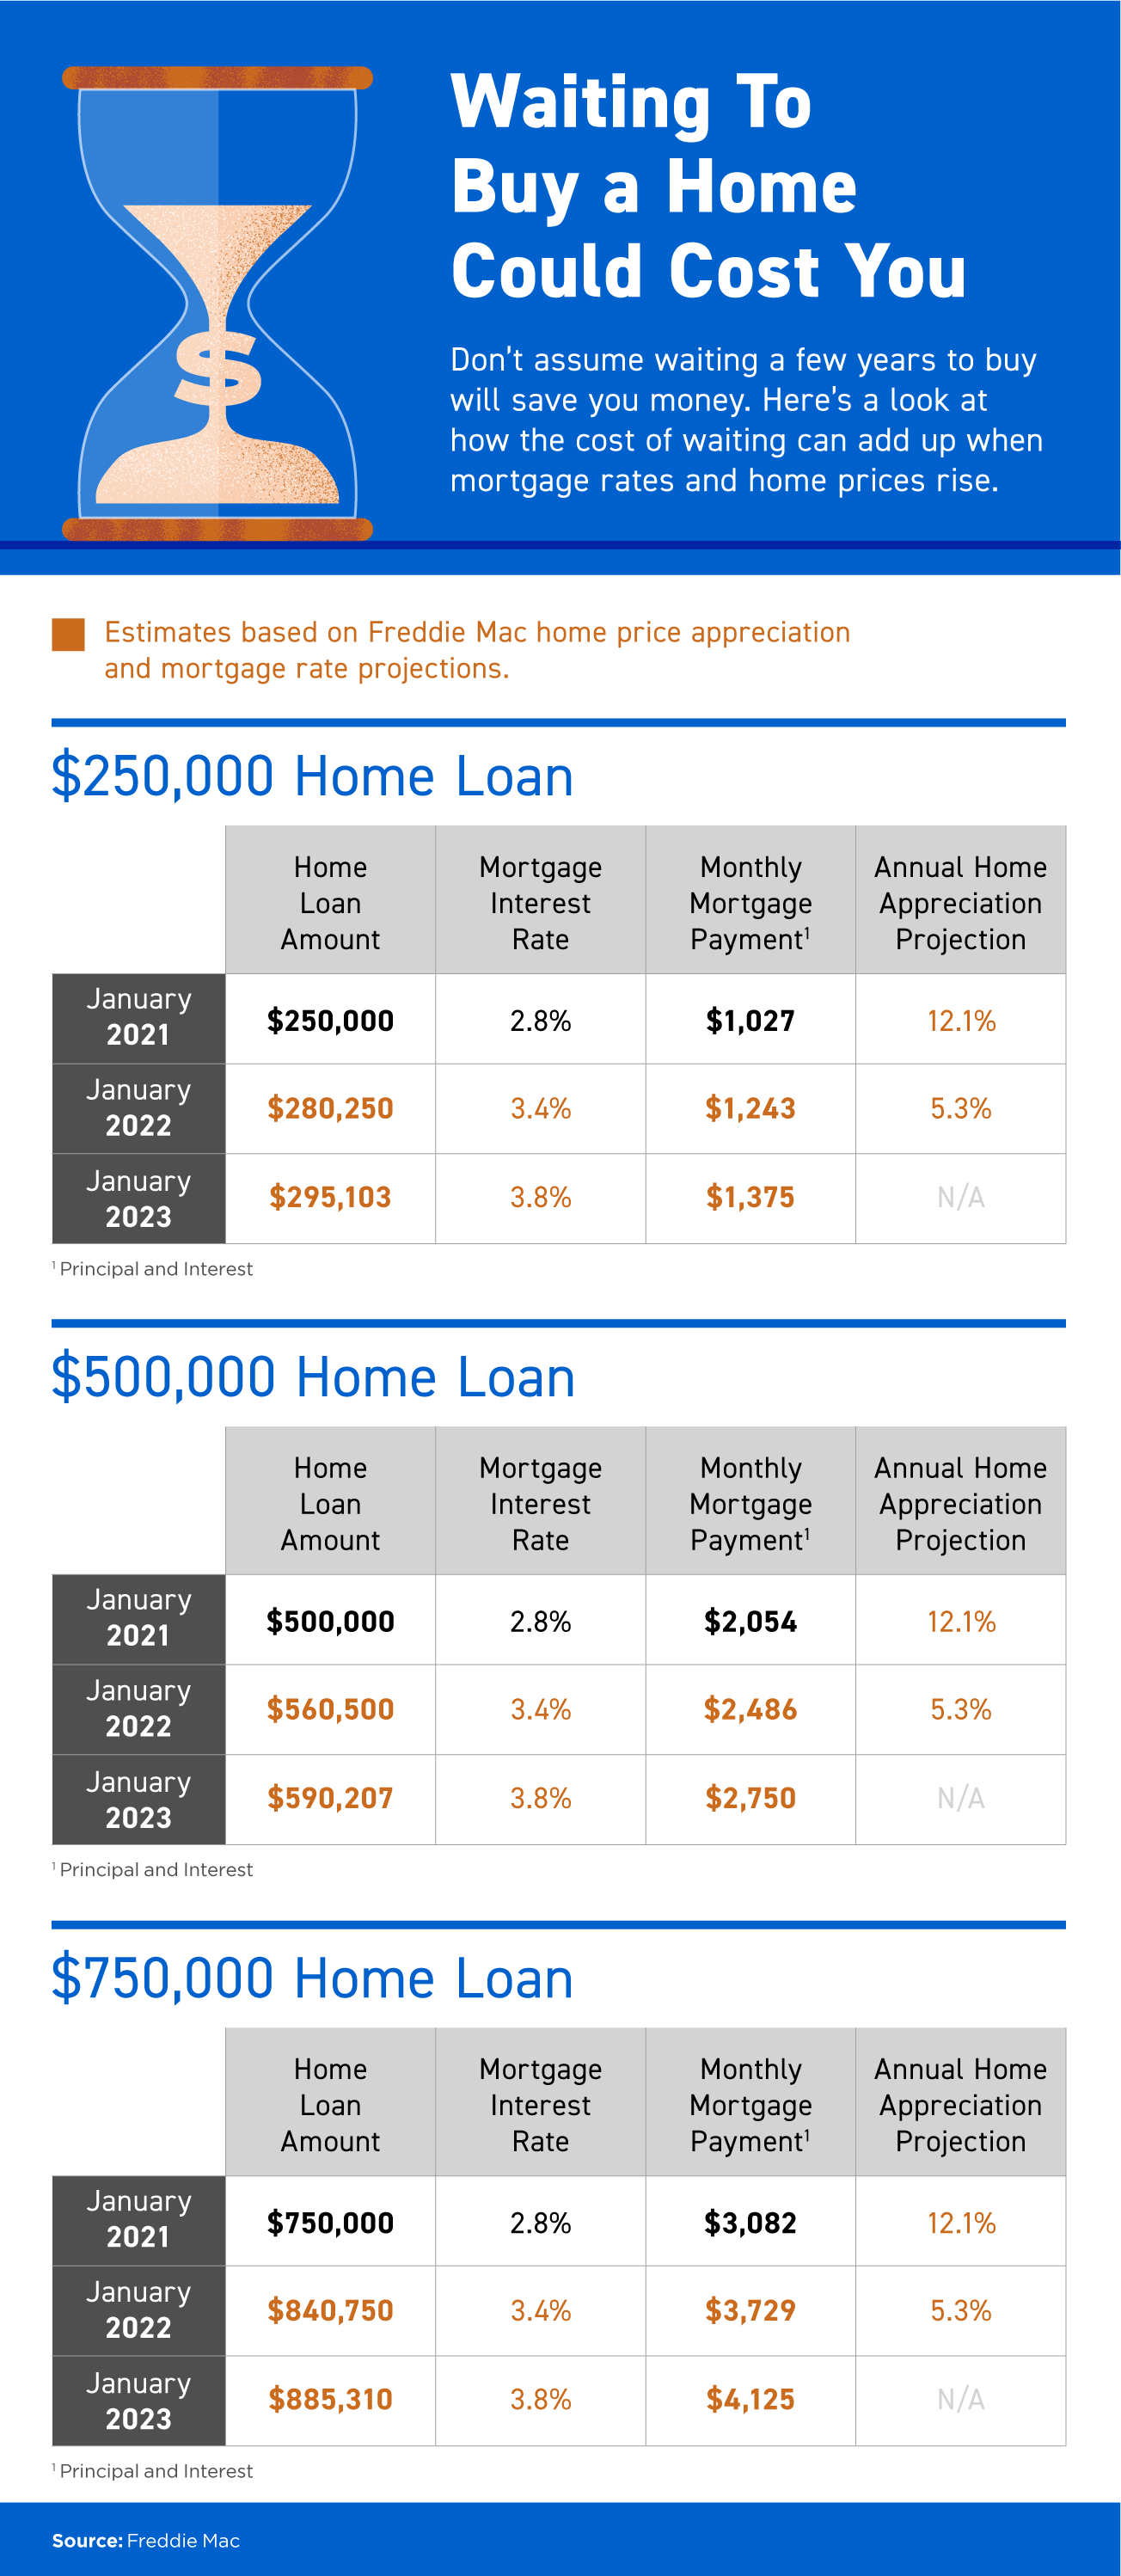 Waiting To Buy a Home Could Cost You [INFOGRAPHIC] | Bridge Builders